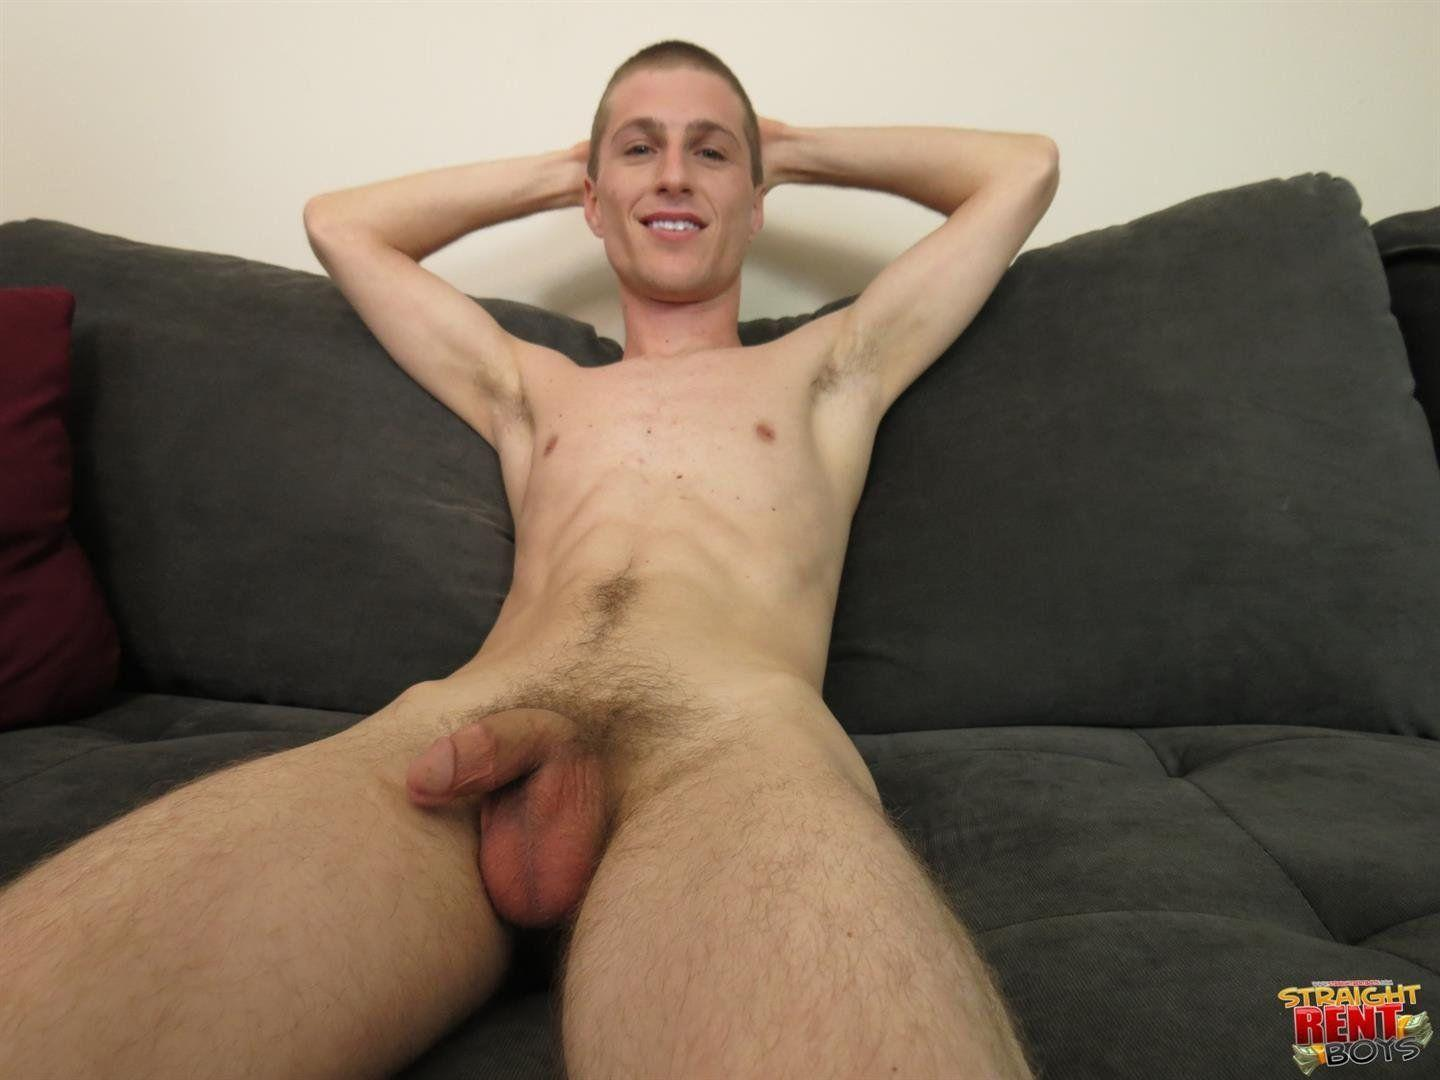 Twink for rent